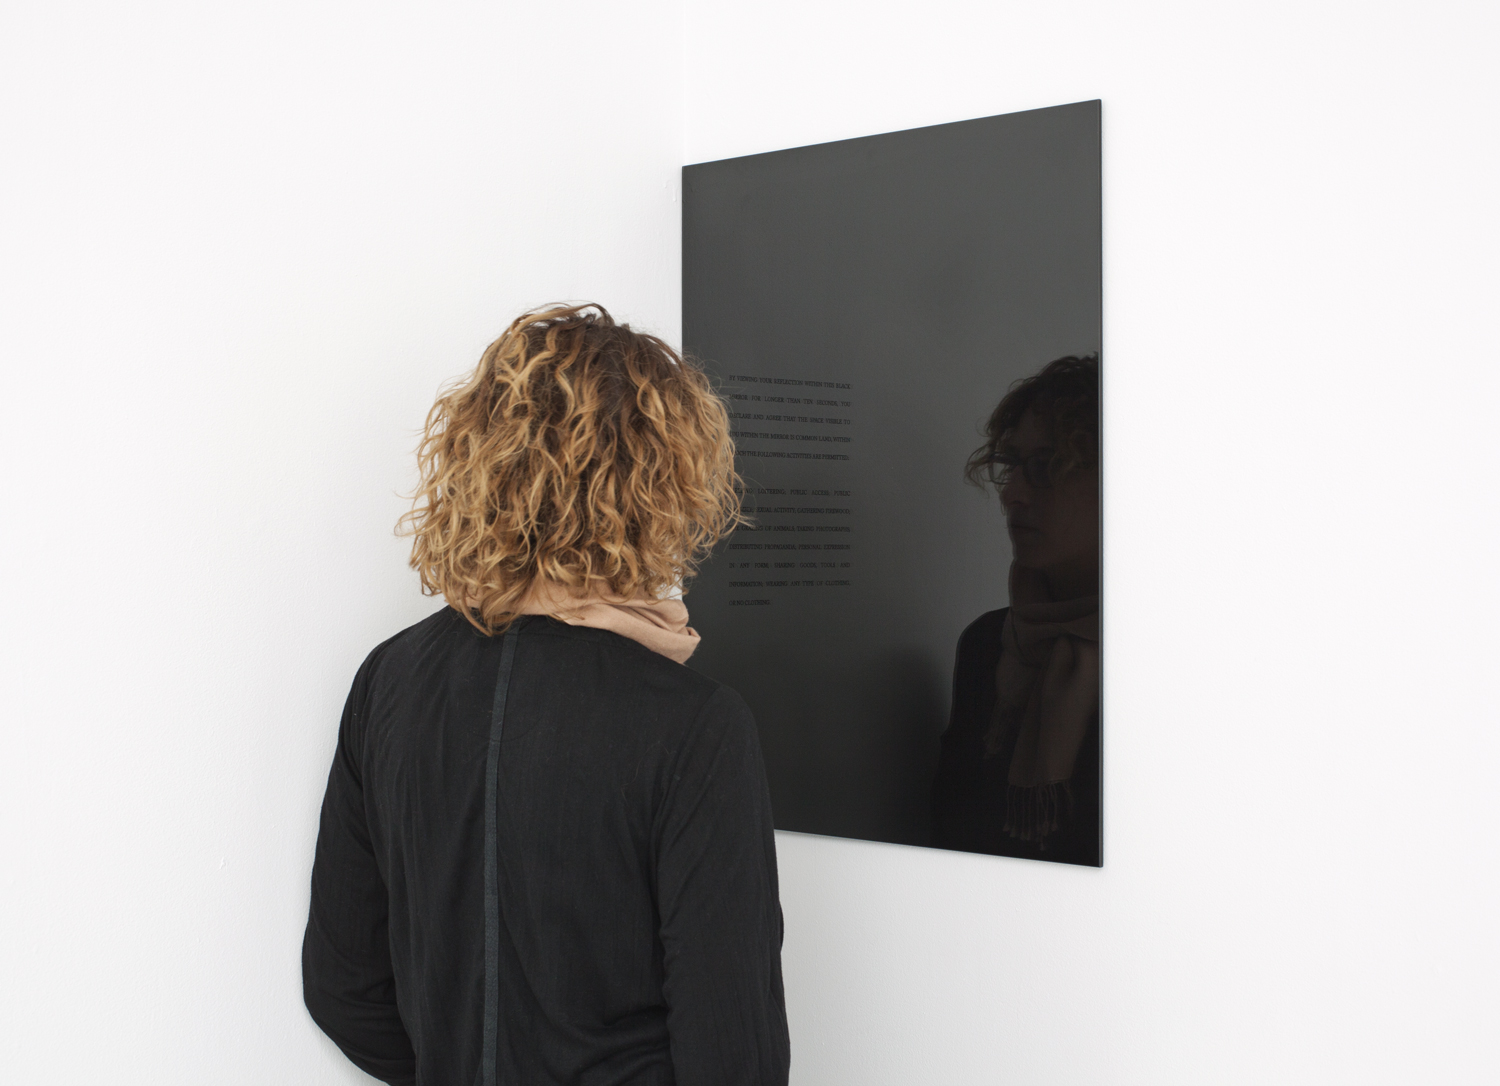 Carey Young, 2010, Obsidian Contract,  vinyl text and black mirror. First exhibited at Paula Cooper Gallery, New York